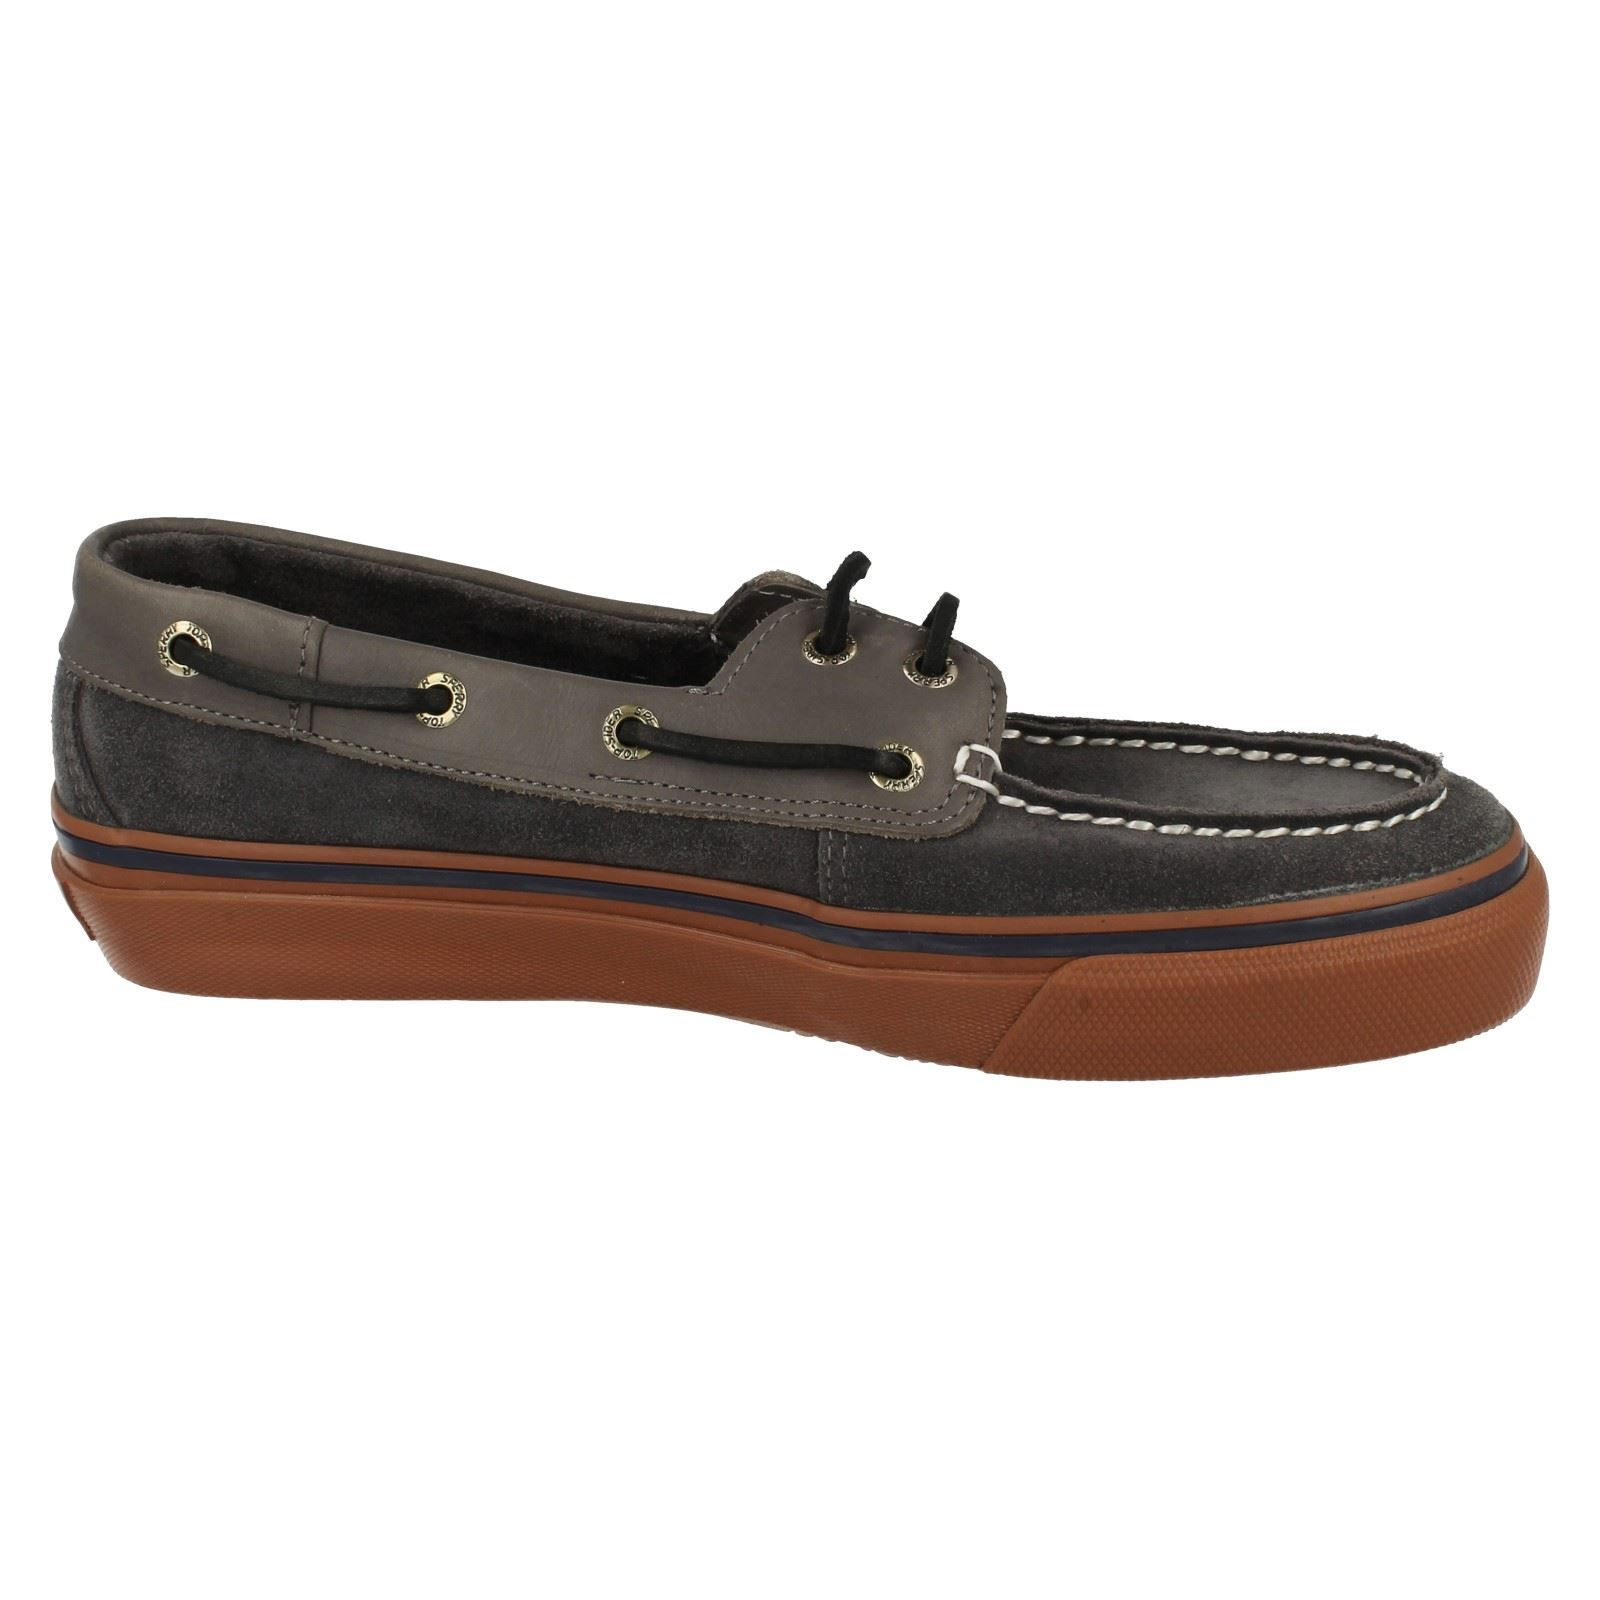 Mens Sperry Bahama Top Sider Casual Deck Style Shoes | eBay